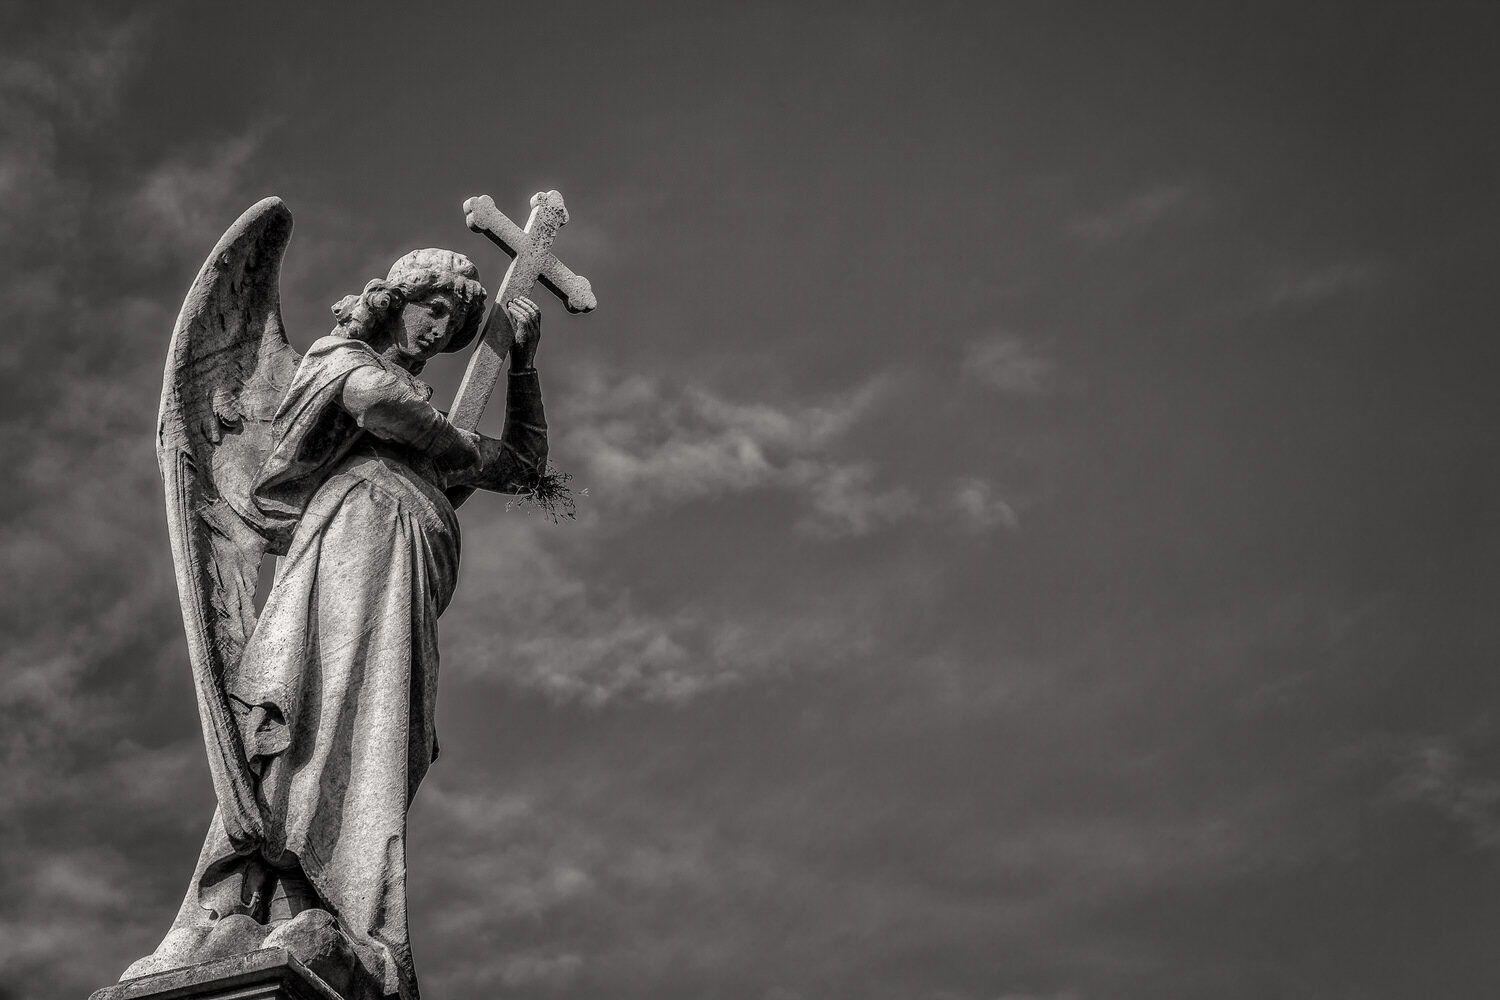 Angel Statue and Cross, La Recoleta Cemetery in Buenos Aires